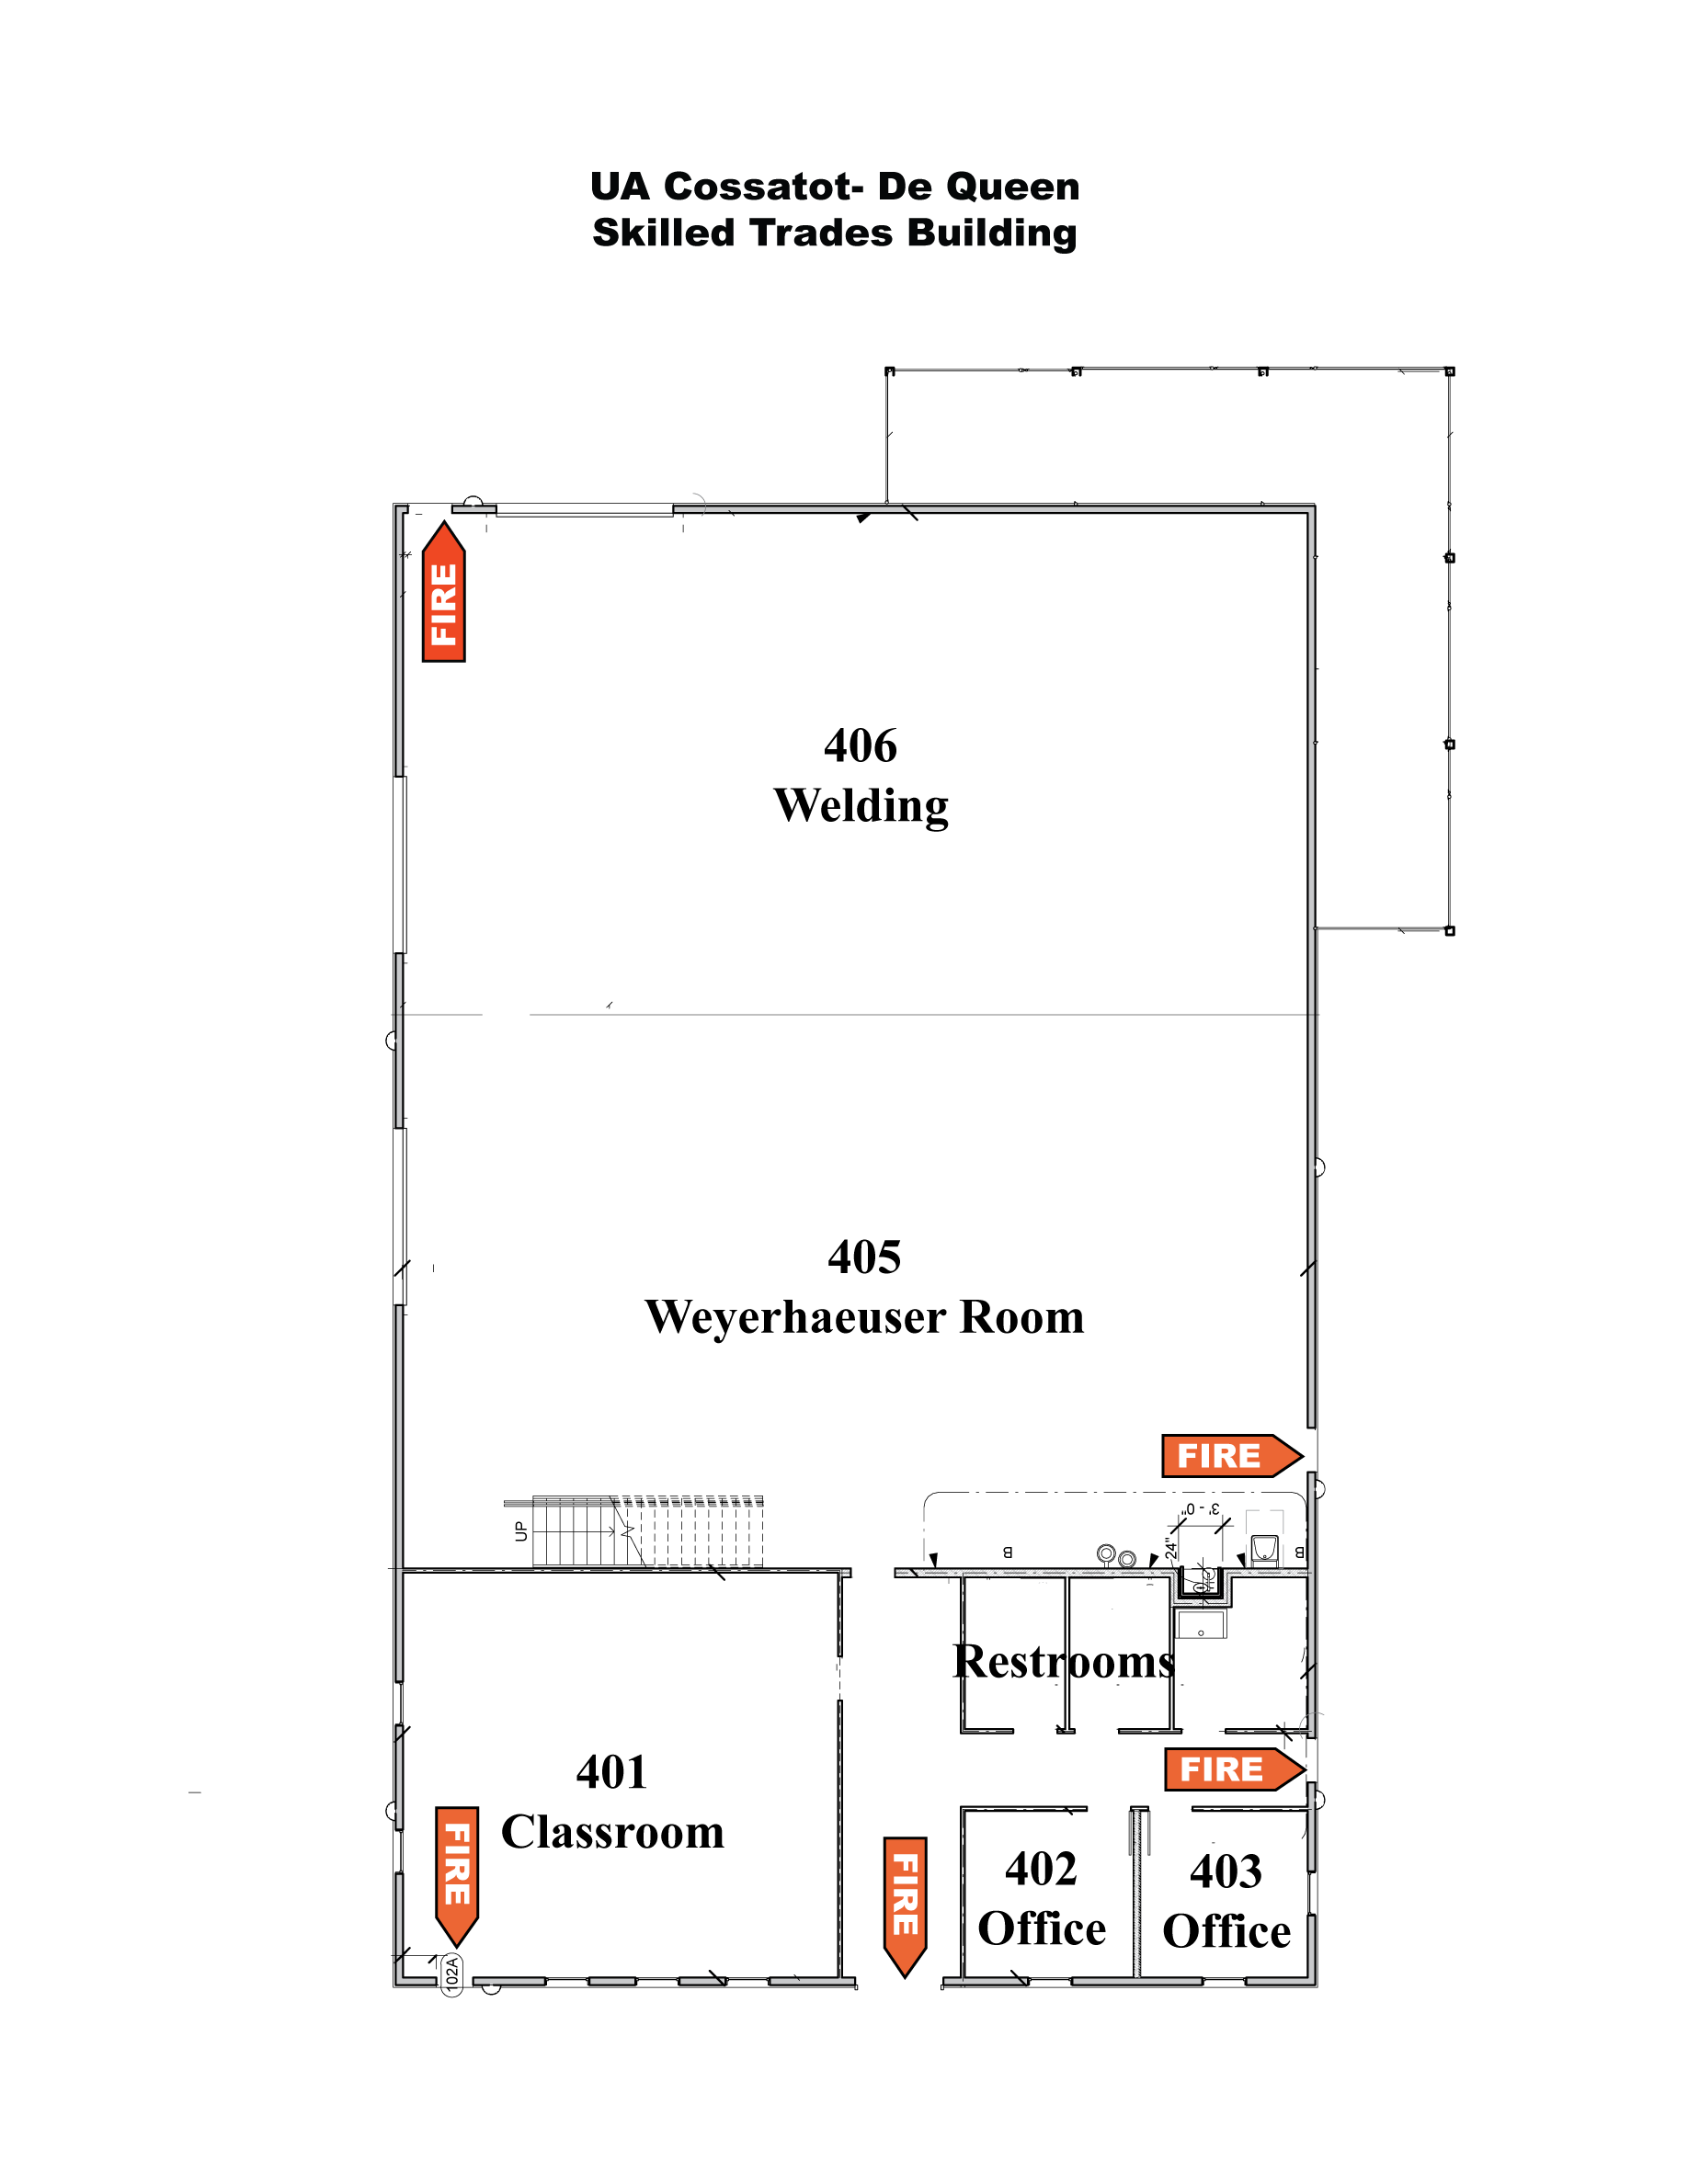 Map of Skilled Trades Building on De Queen Campus